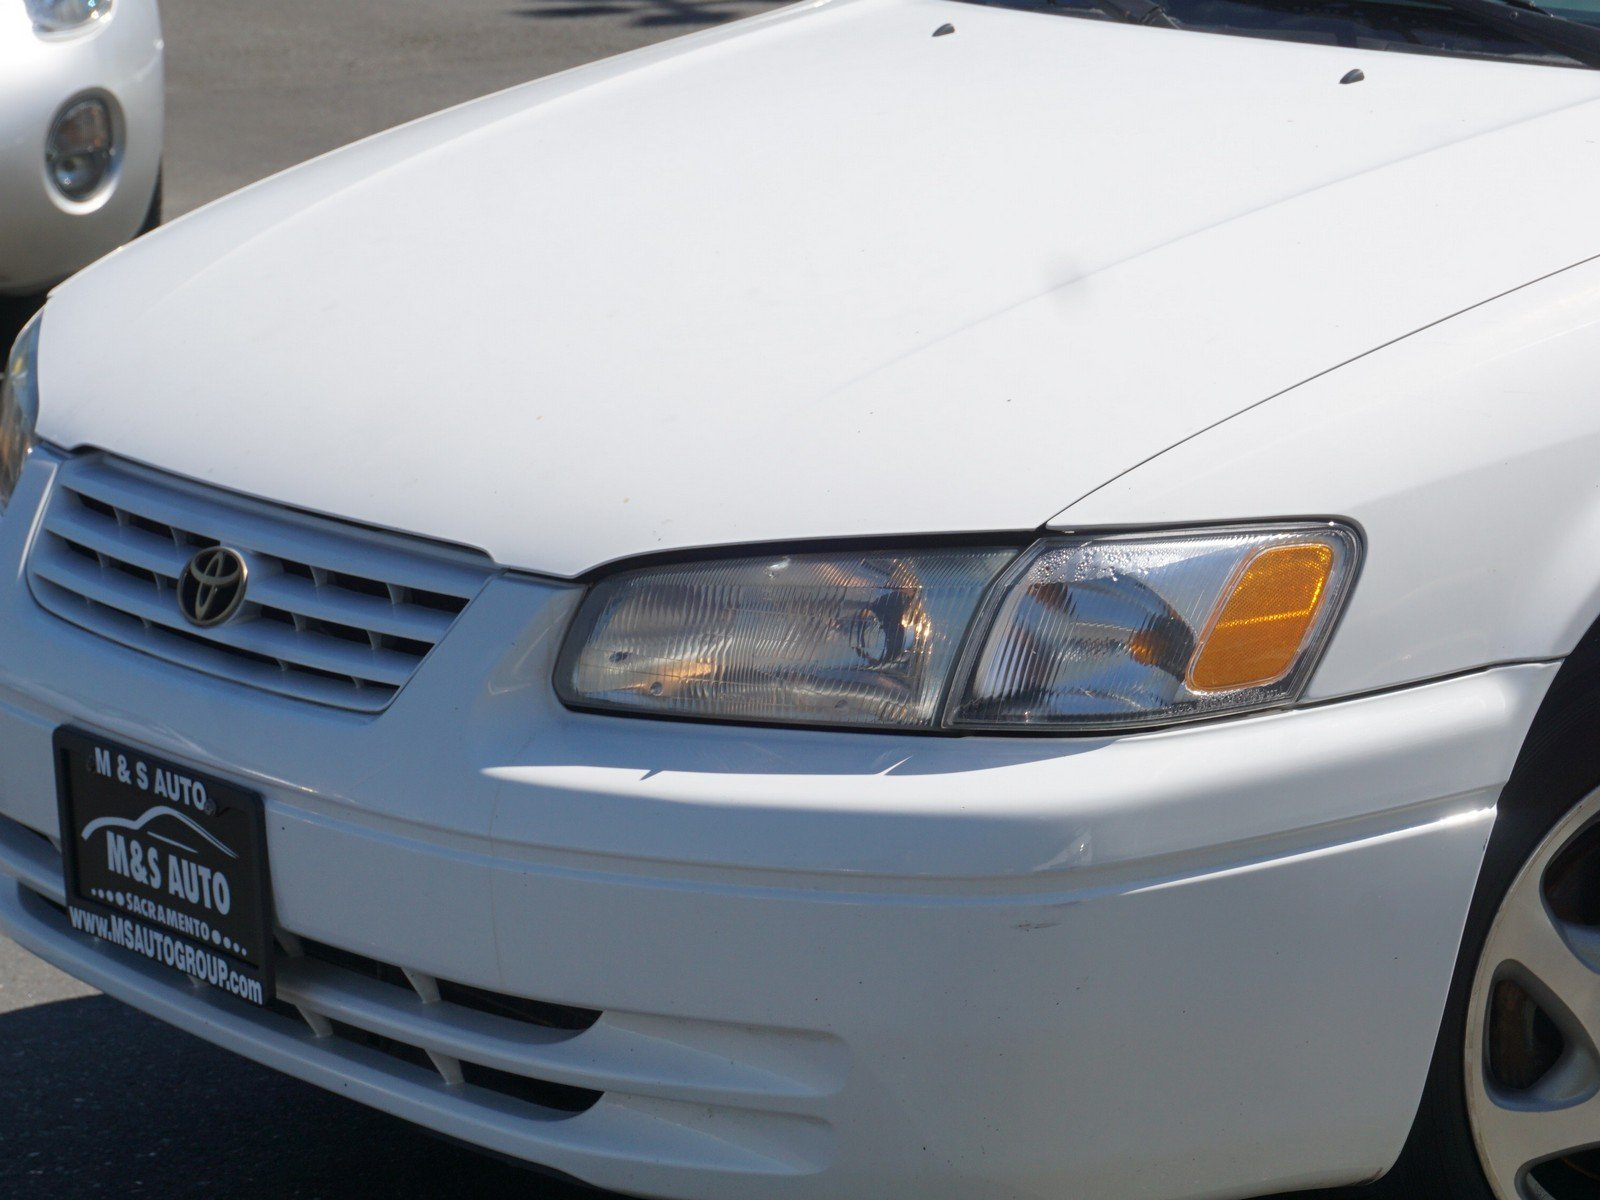 Pre Owned 1999 Toyota Camry Le 4dr Car In Sacramento A22989 M And 99 Fuel Filter